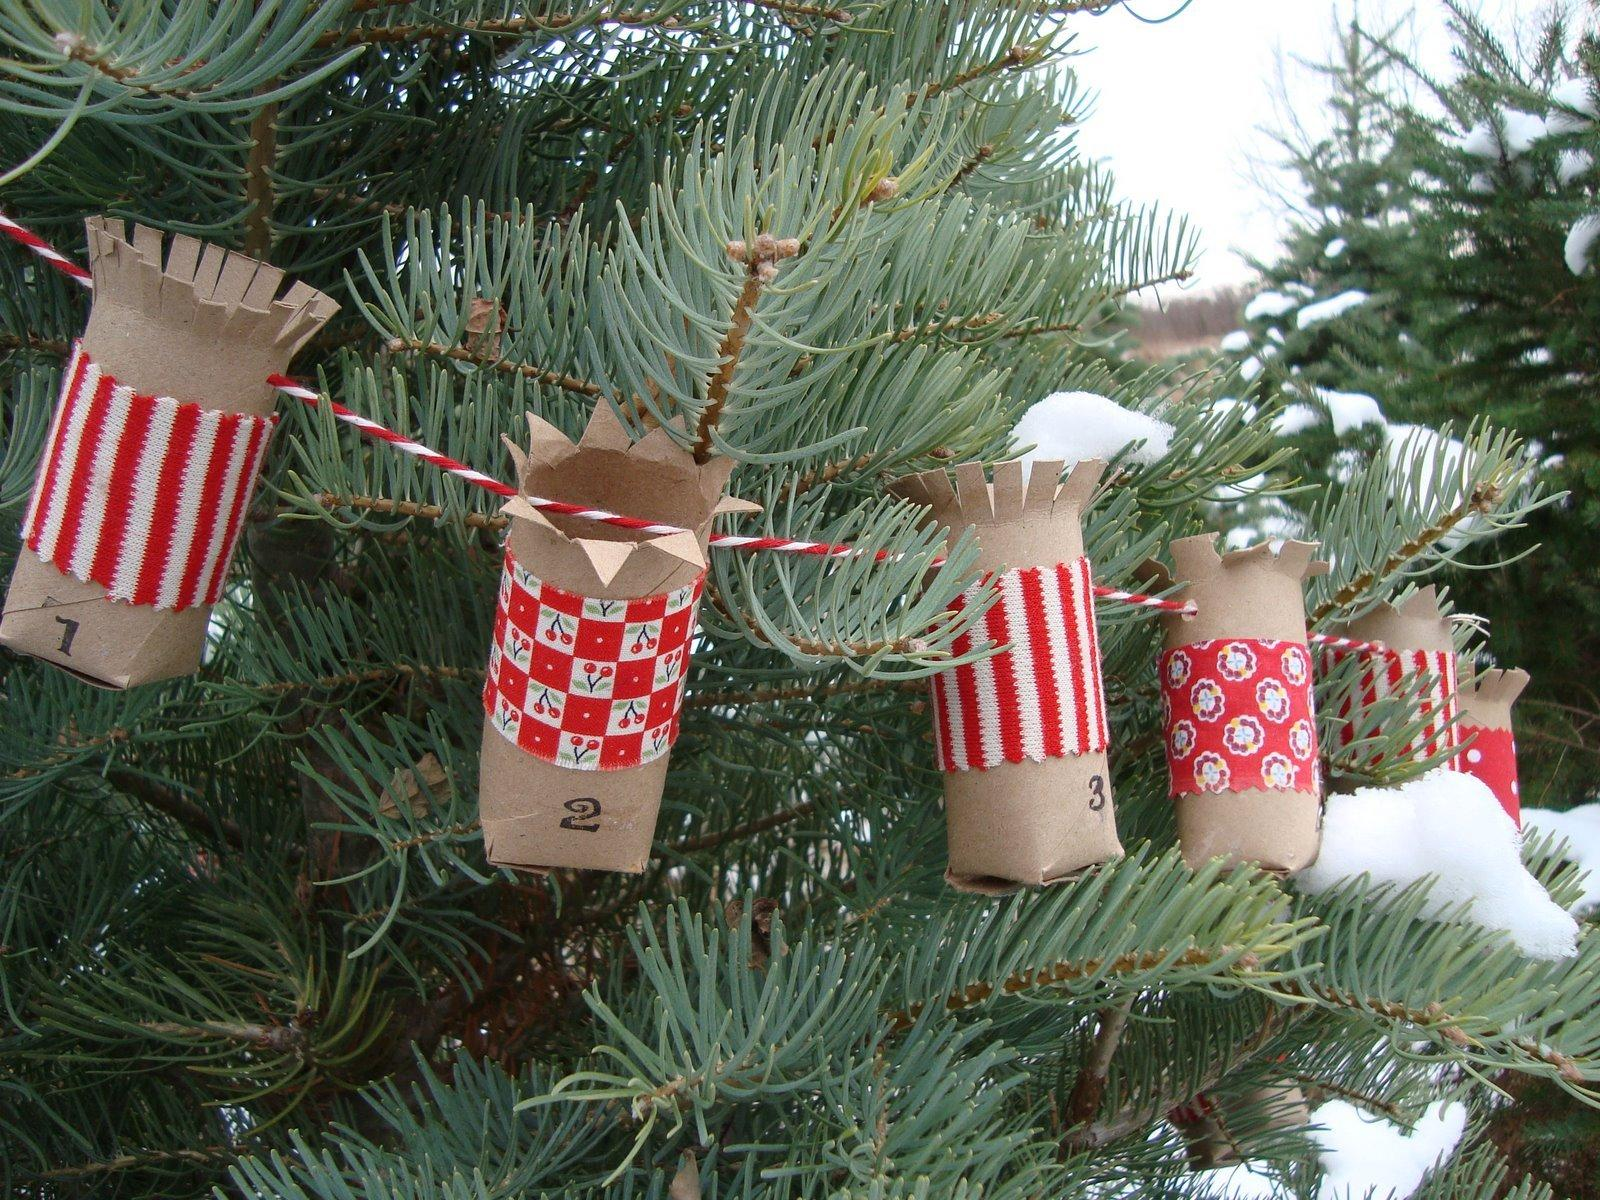 Festive diy christmas crafts from toilet paper rolls 20 festive diy christmas crafts from toilet paper rolls jeuxipadfo Image collections